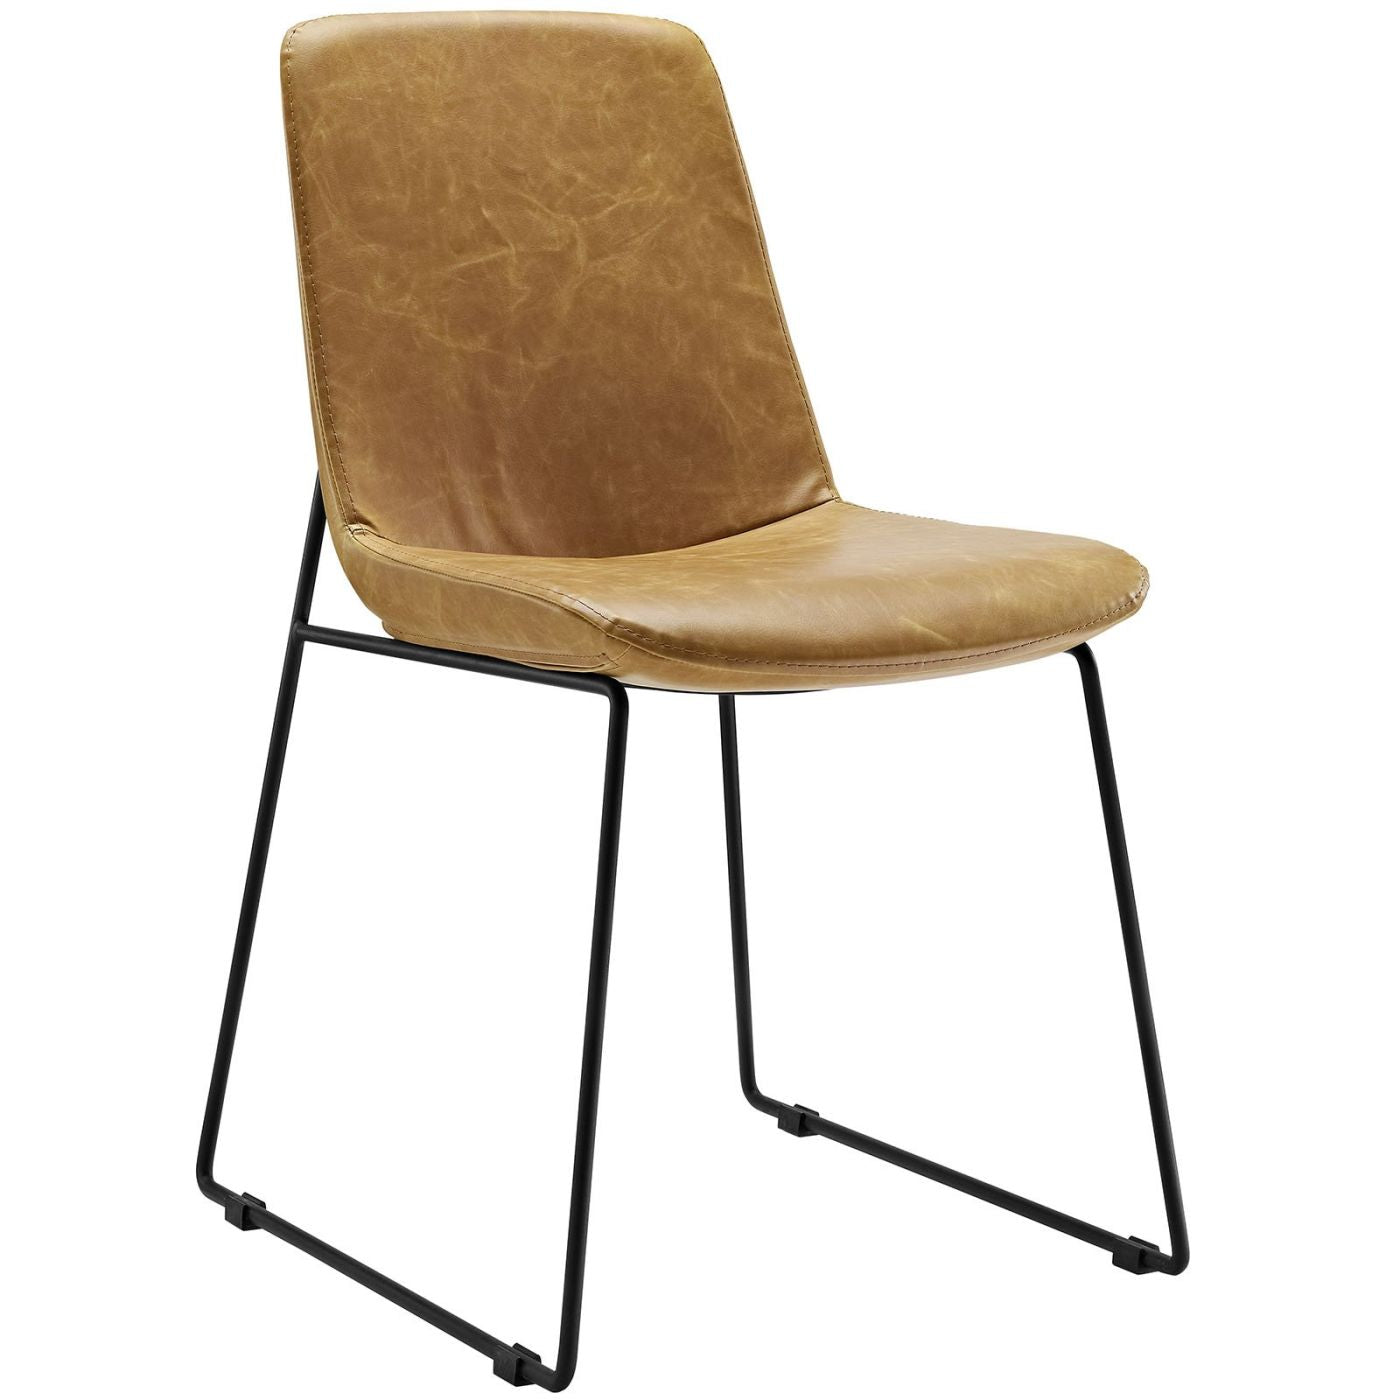 leather side chairs. Invite Dining Side Chair Stitched Faux Leather Tan Chairs